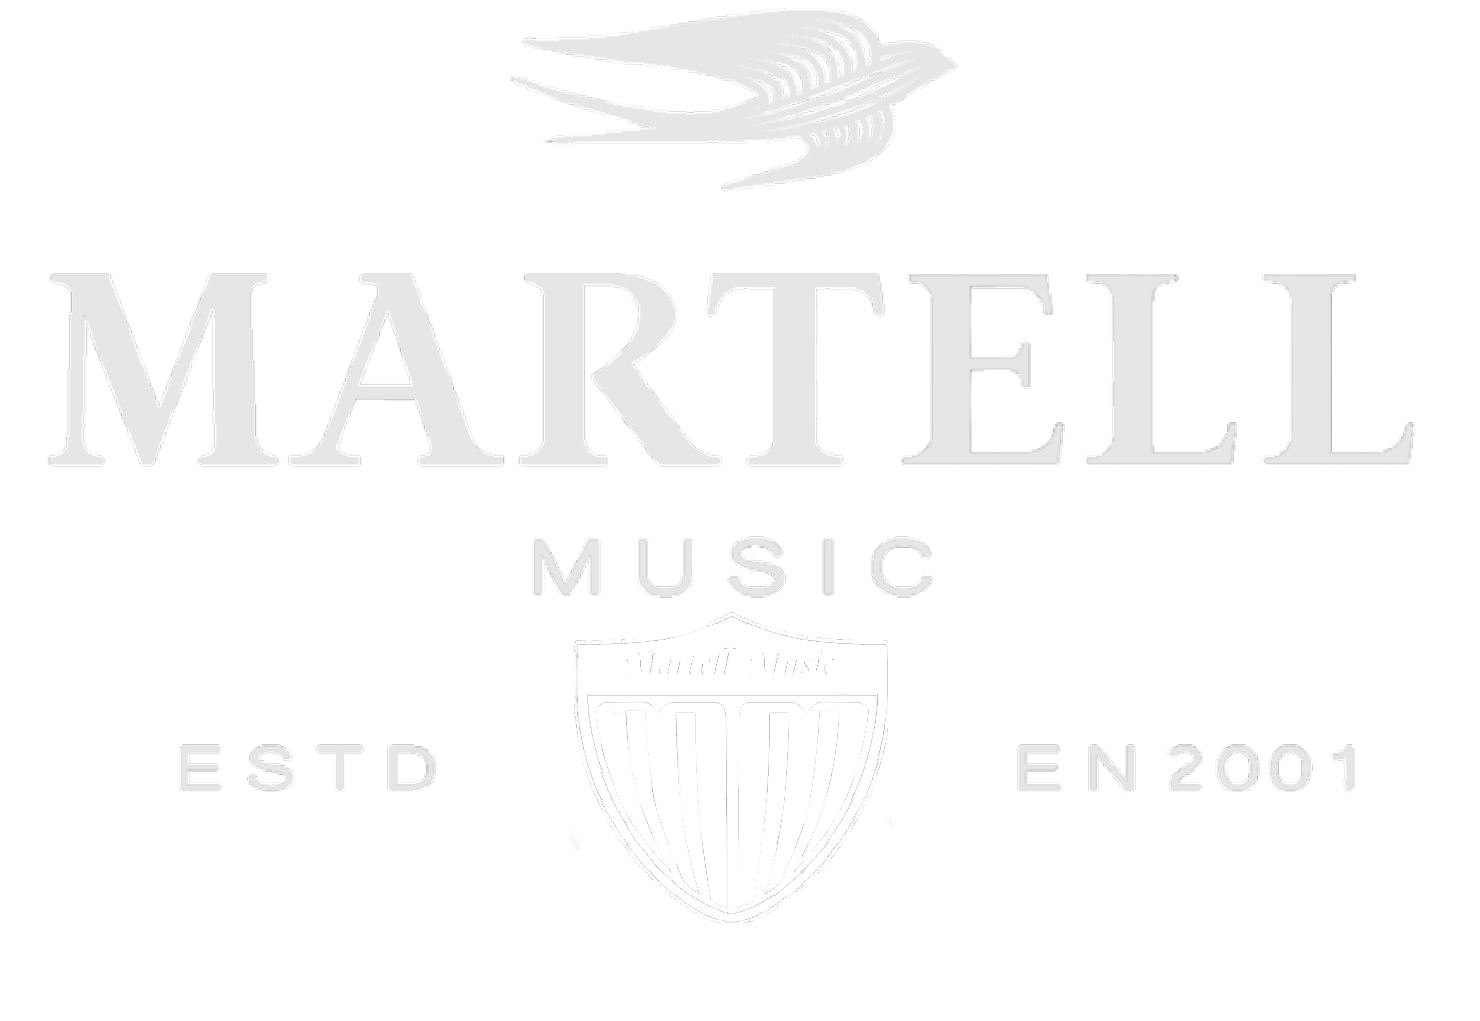 Welcome to Martell Music